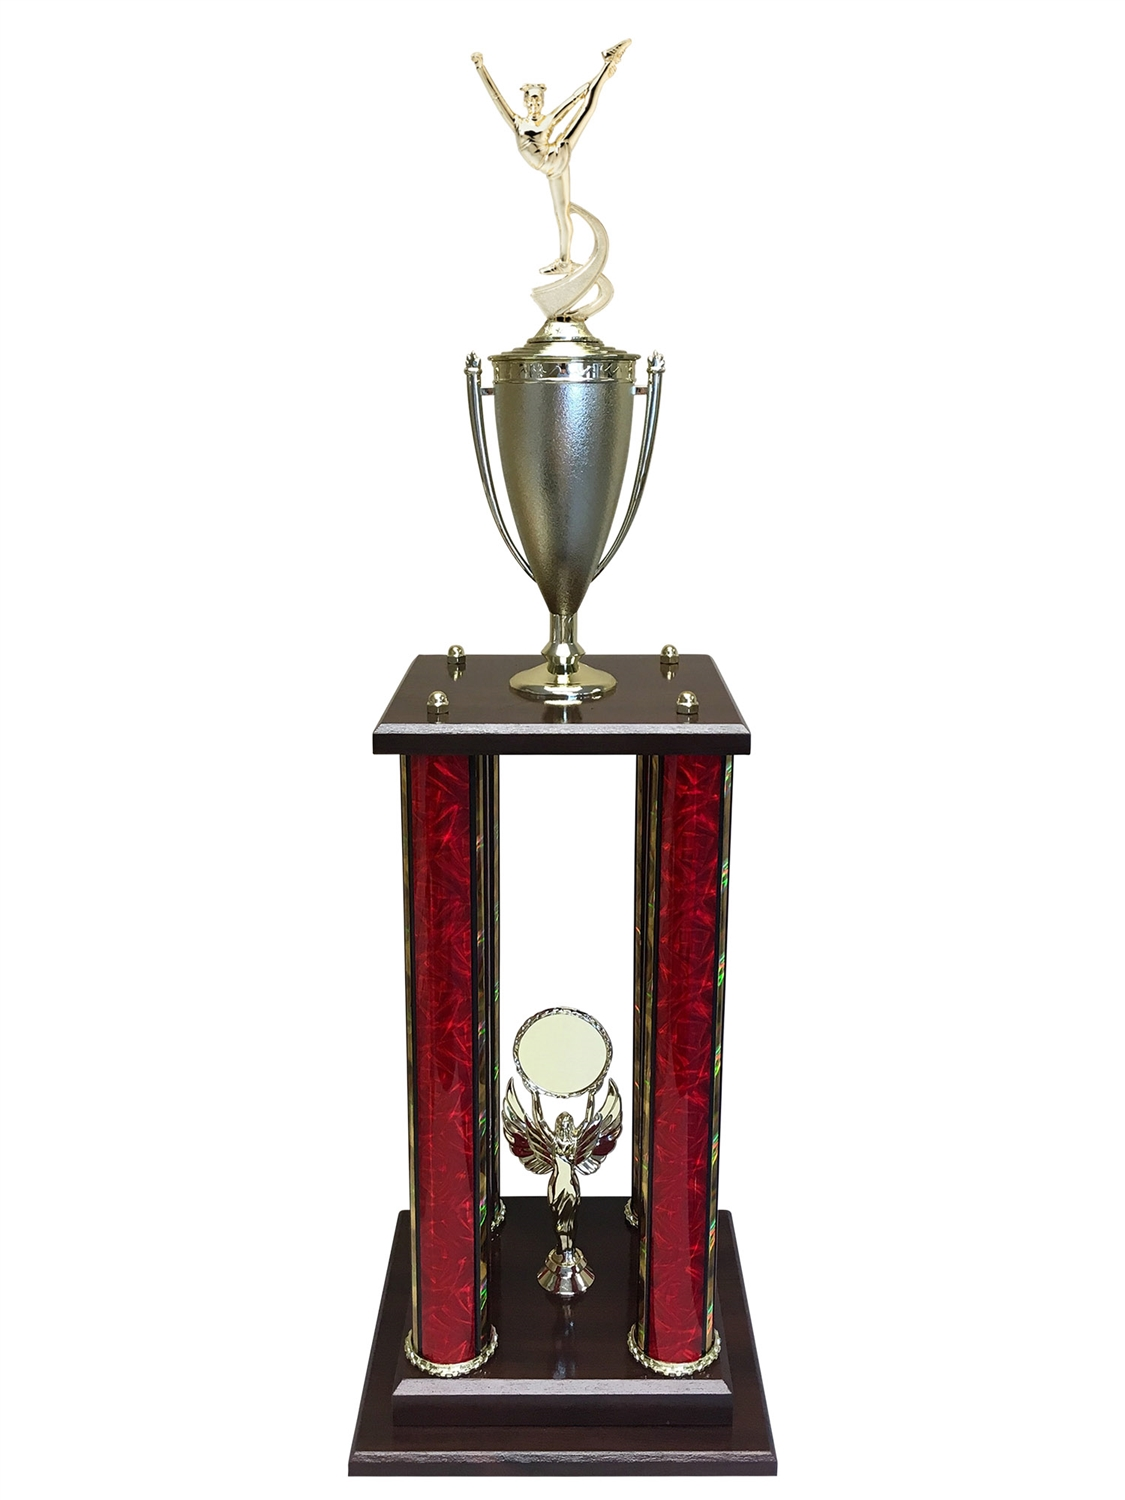 4 Post Dance Trophy in 11 colors & 3 sizes